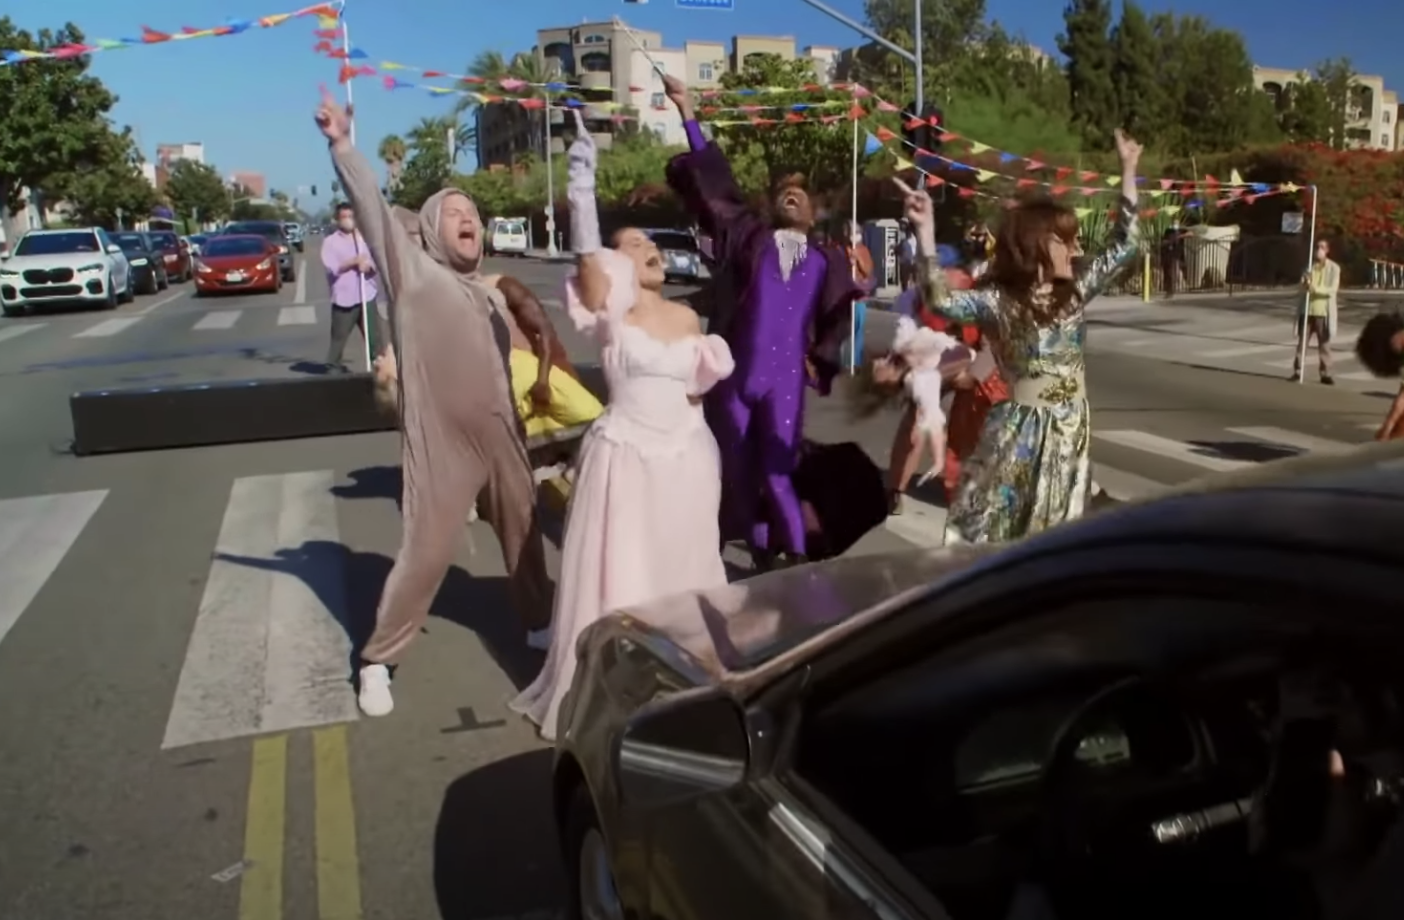 The cast performs in the crosswalk, throwing up their hands